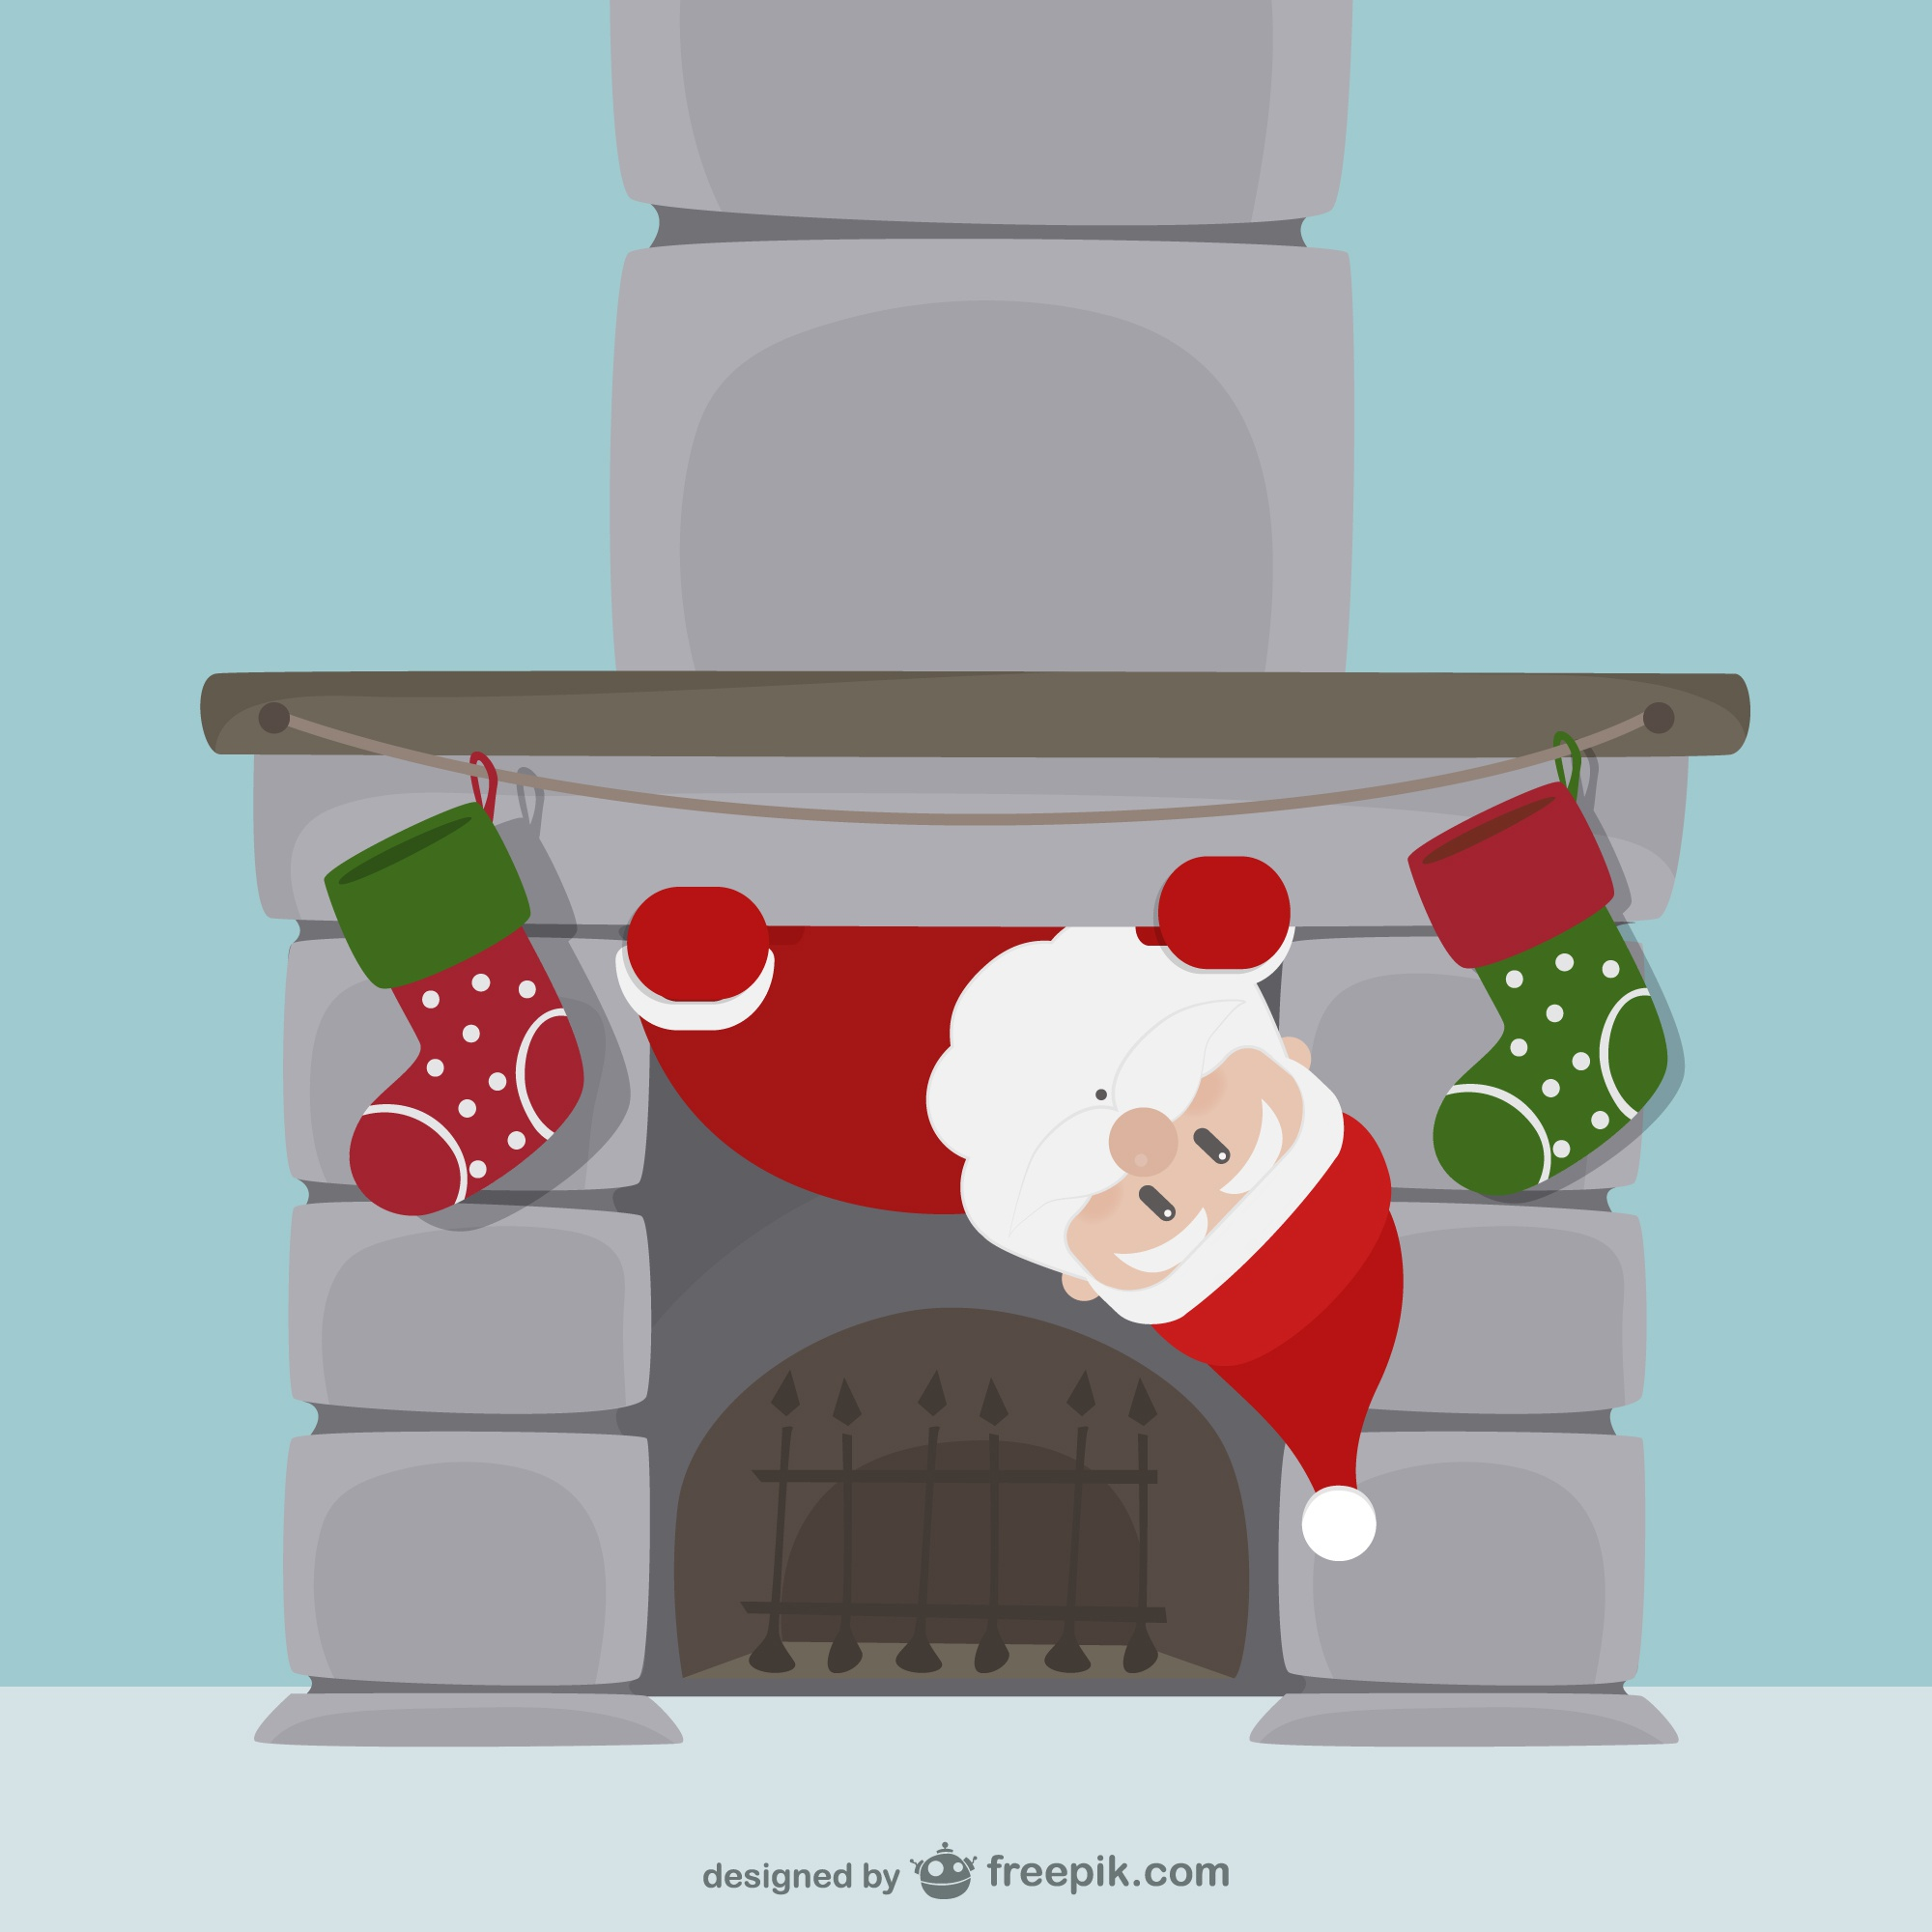 Santa Claus and chimney cartoon